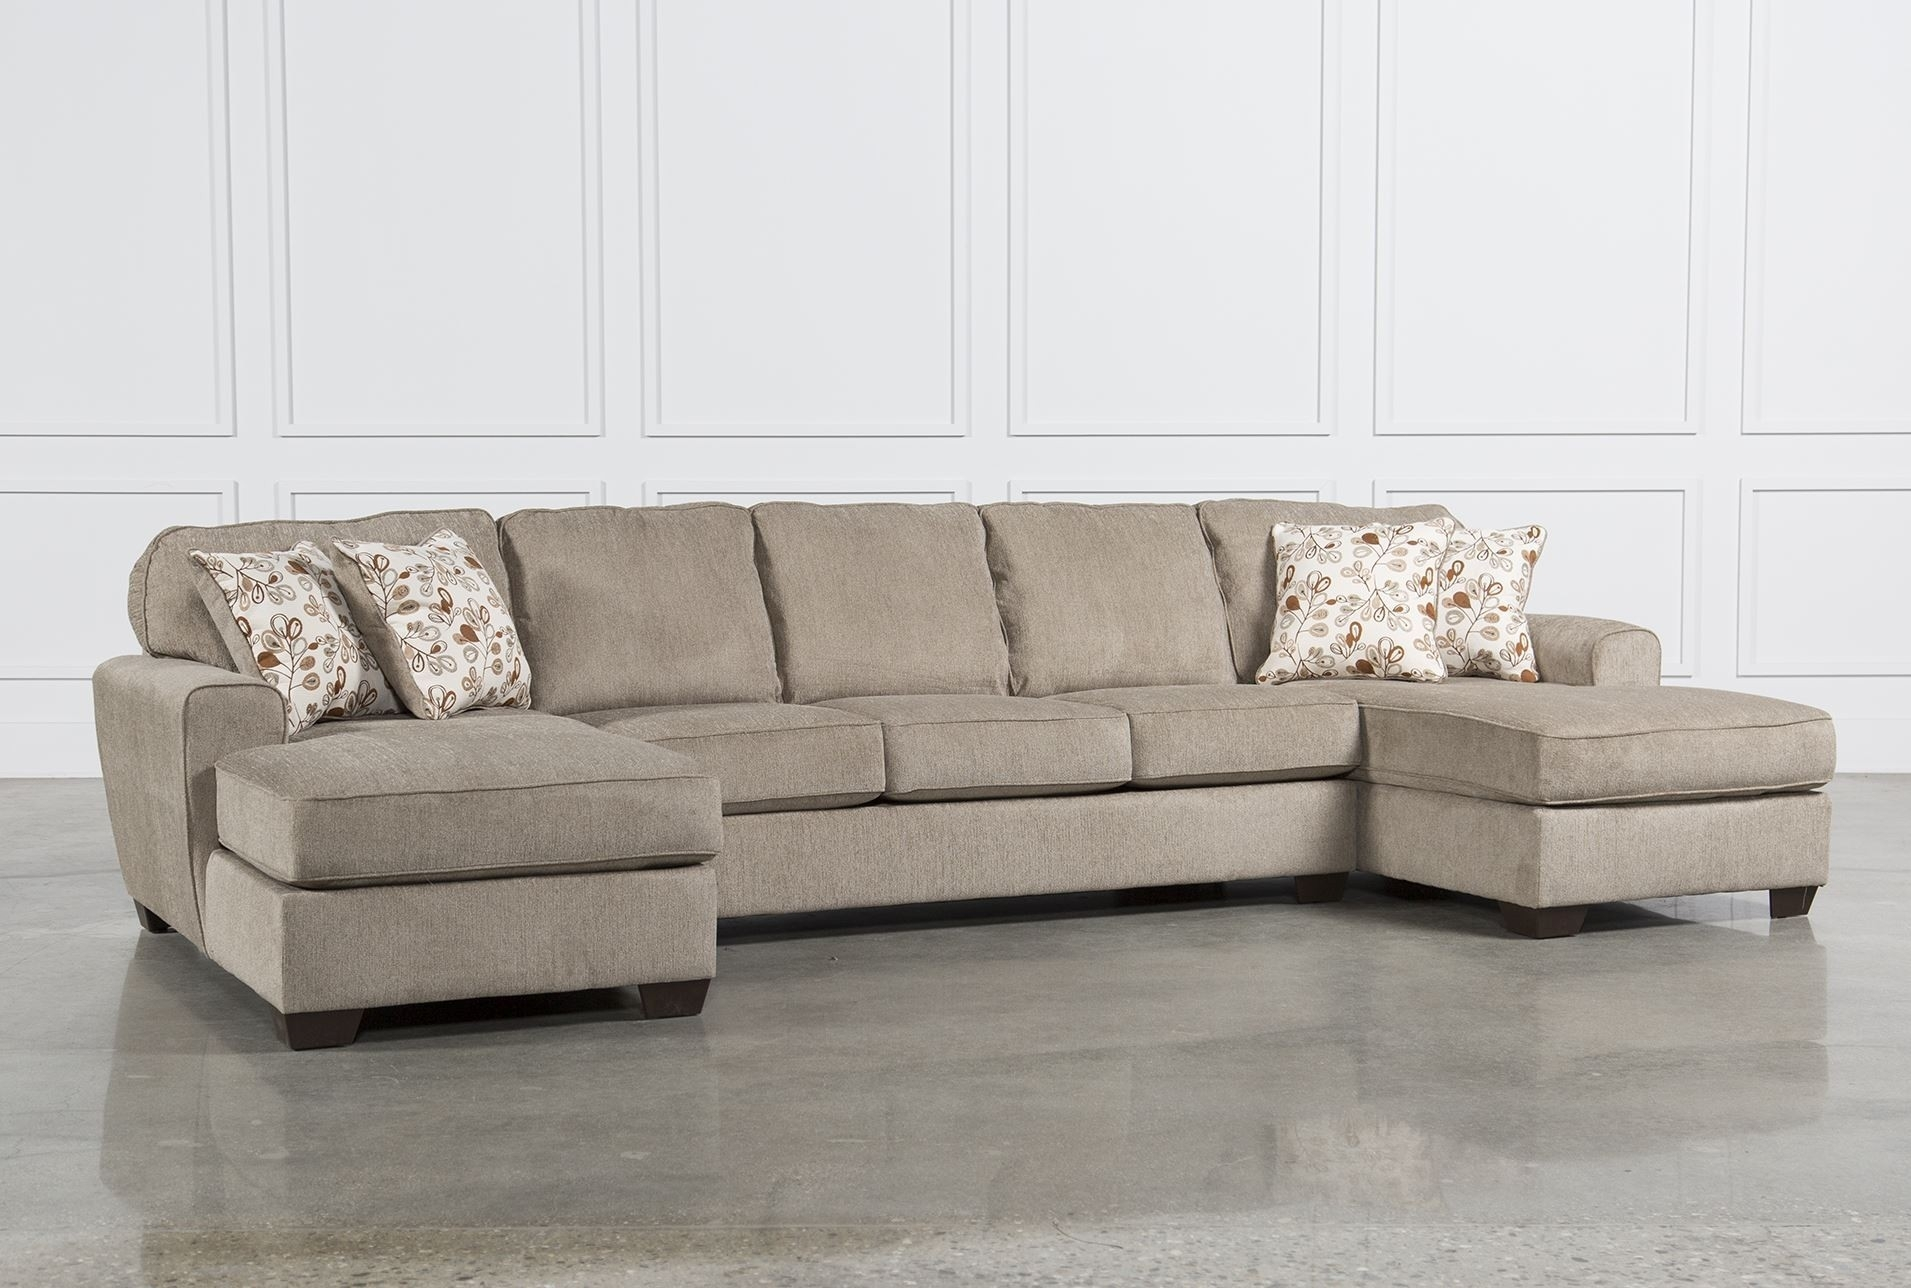 Sofa Gallery Image And Wallpaper throughout Sectional Sofas With 2 Chaises (Image 8 of 10)